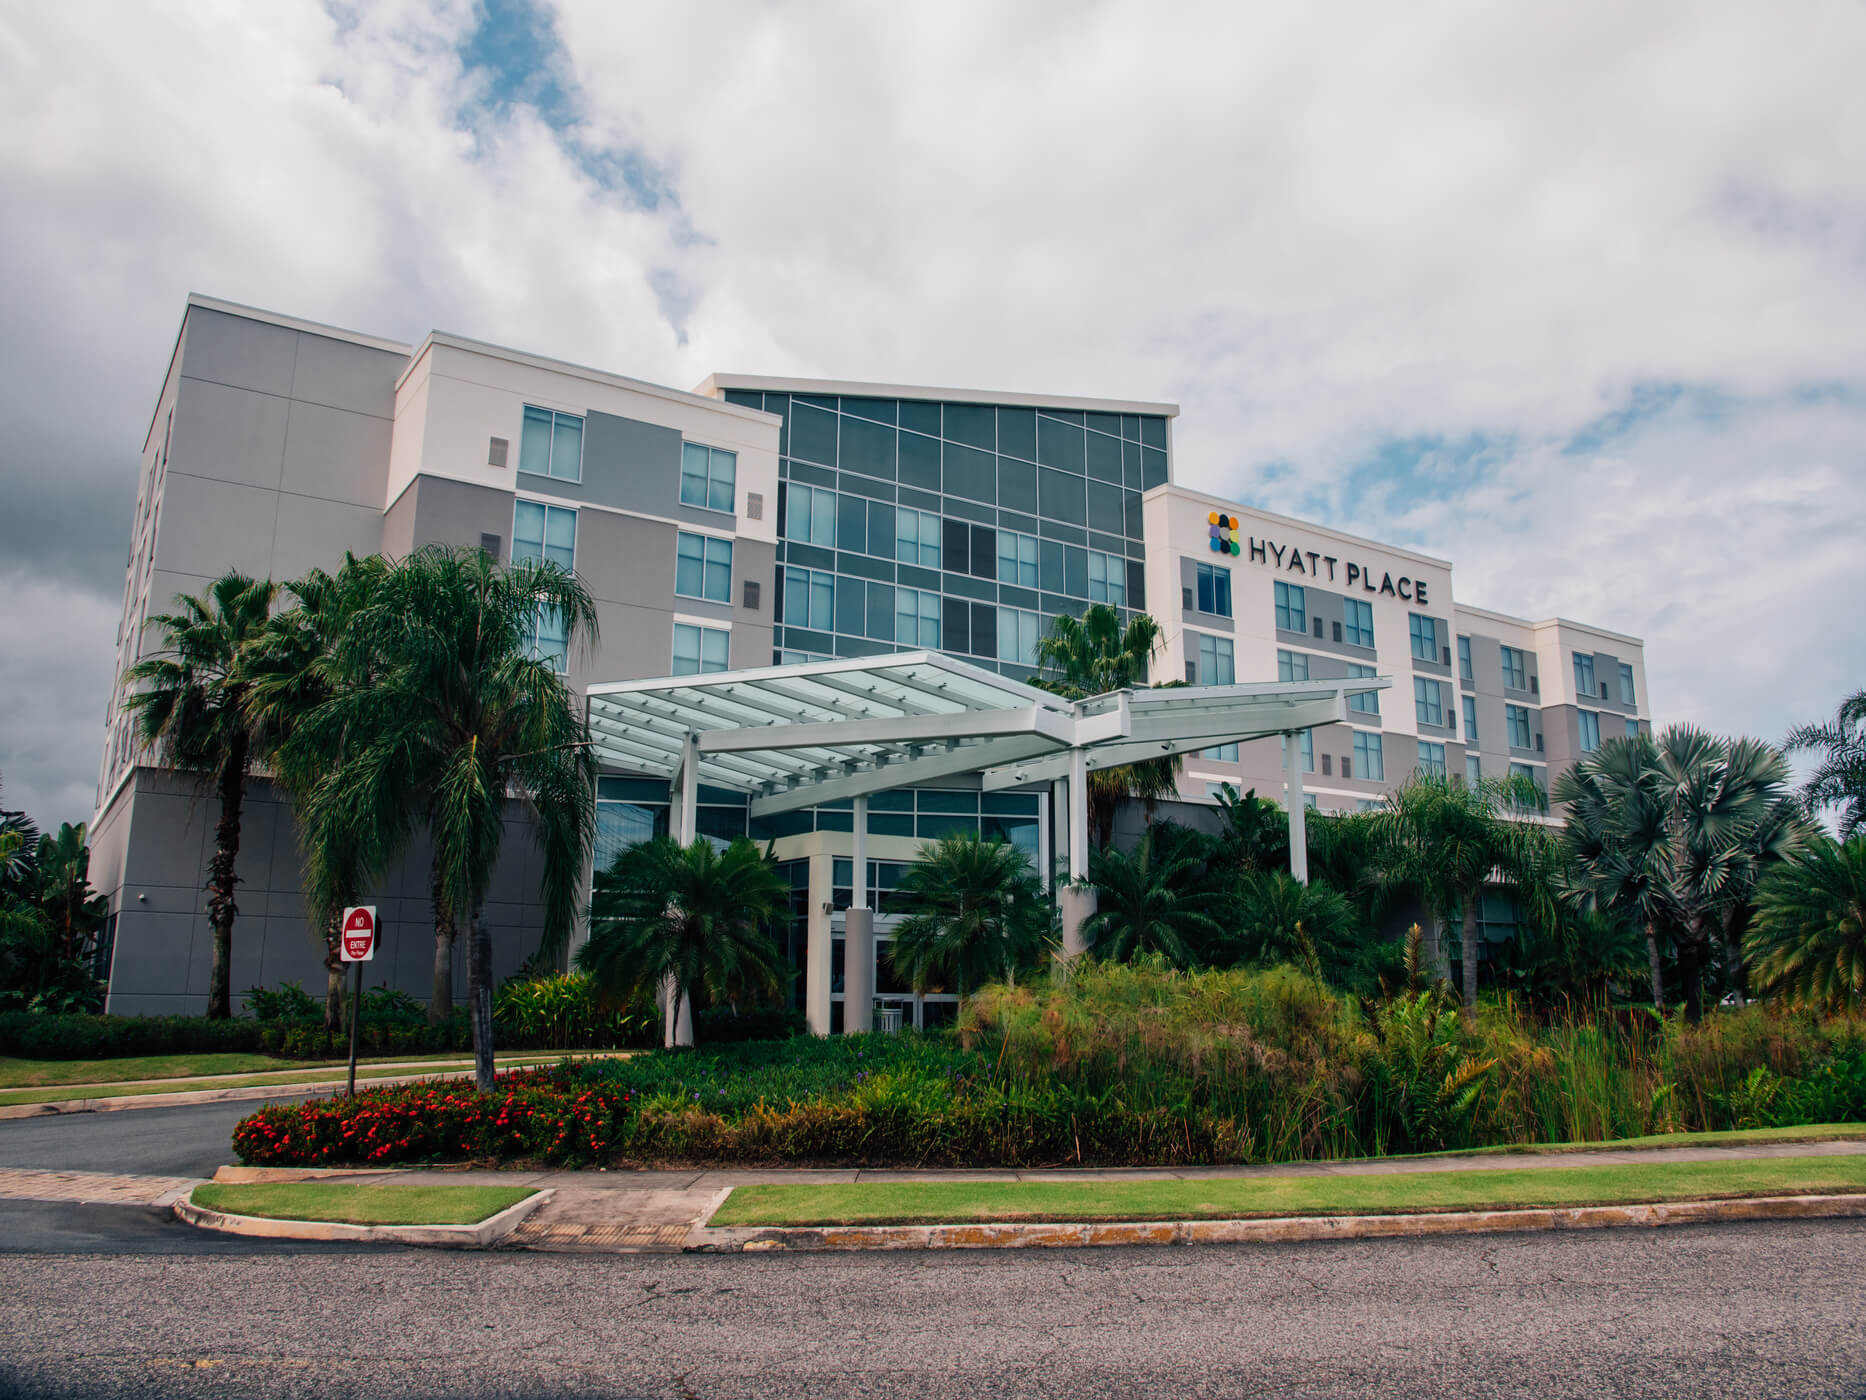 Exterior view of the Hyatt Place Hotel and Casino in Manatí.